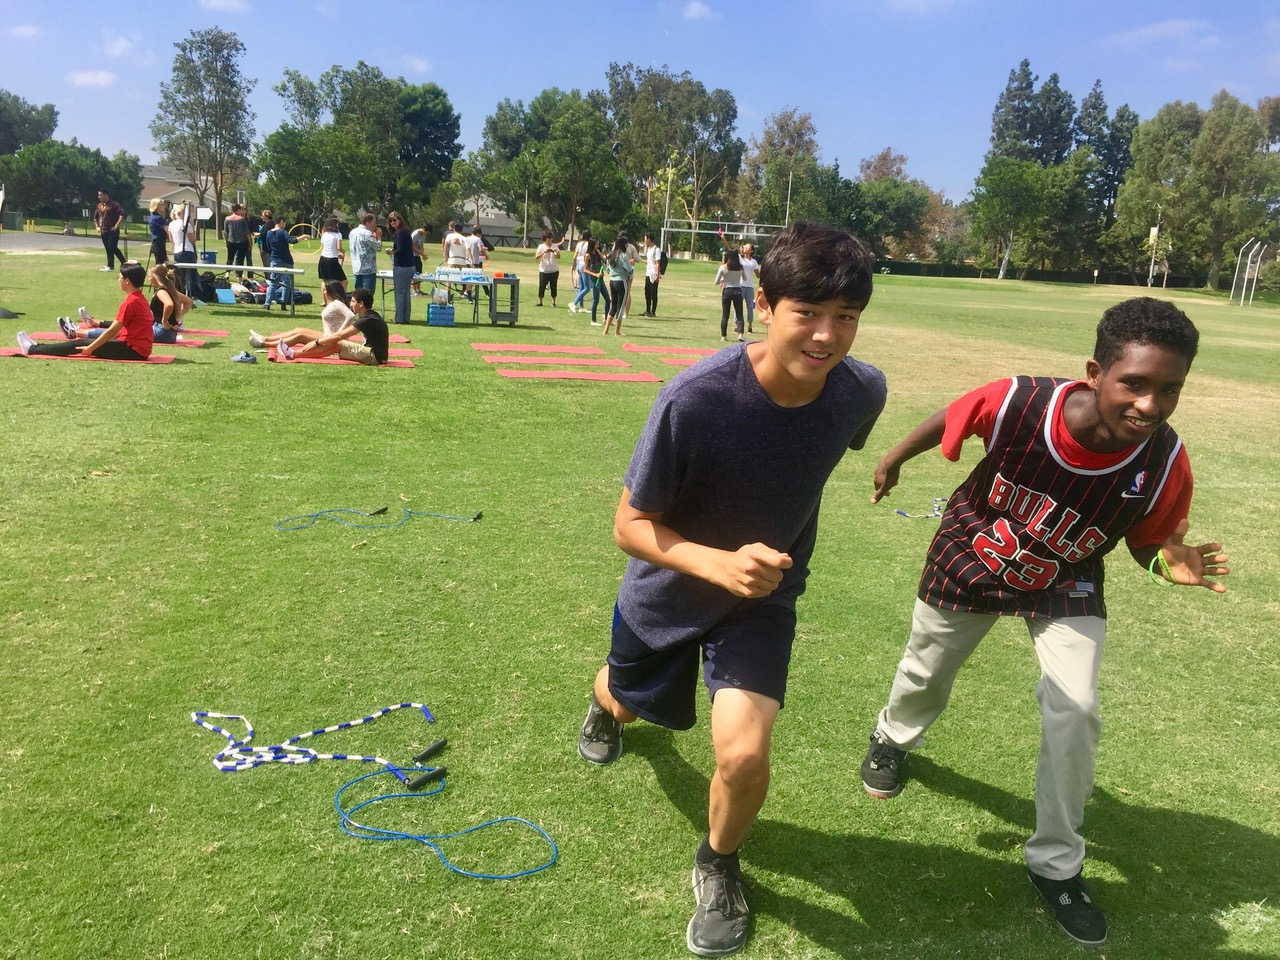 Ben Choi and Caleb Terefe, juniors, participate in activities during the Wellness Wednesday event.